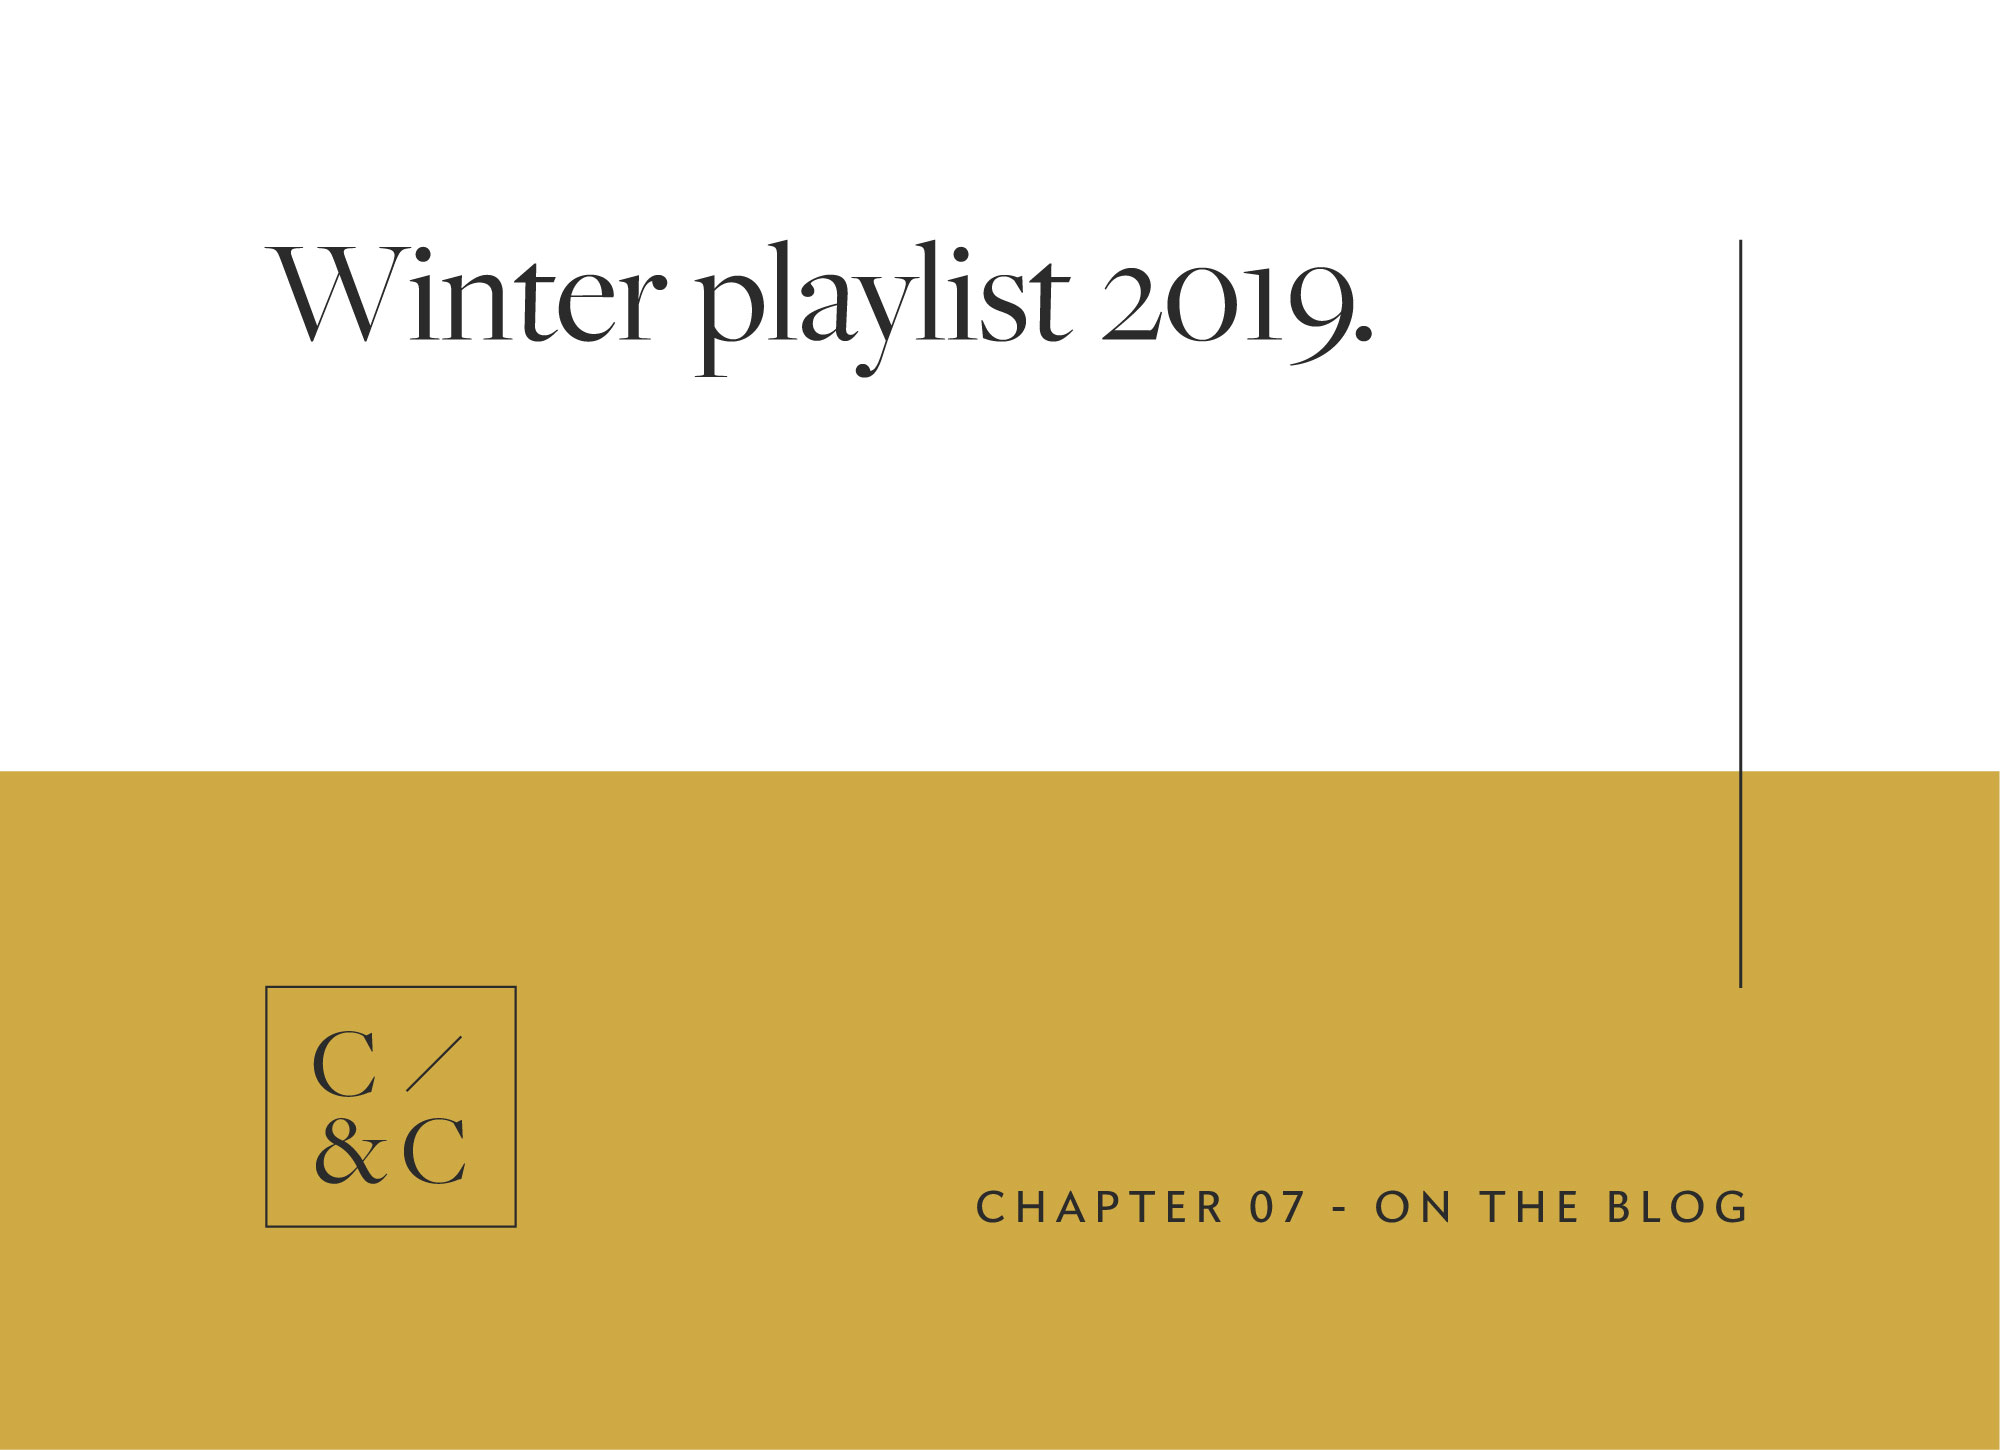 clover-and-crow-winter-playlist-2019-the-designers-business-survival-guide.jpg